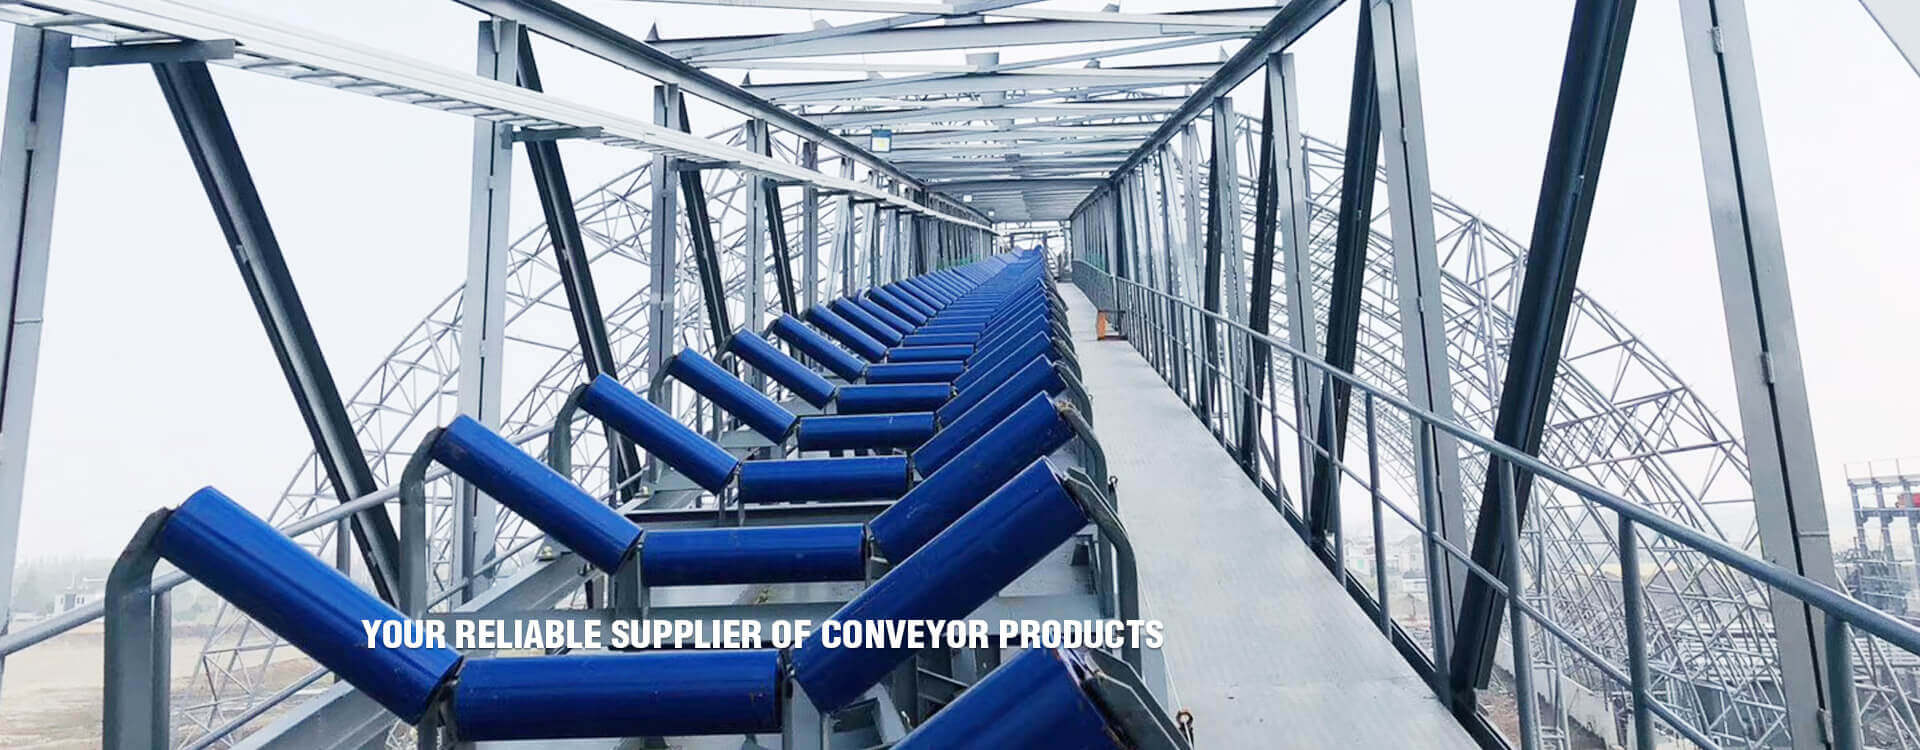 YOUR RELIABLE SUPPLIER OF CONVEYOR PRODUCTS